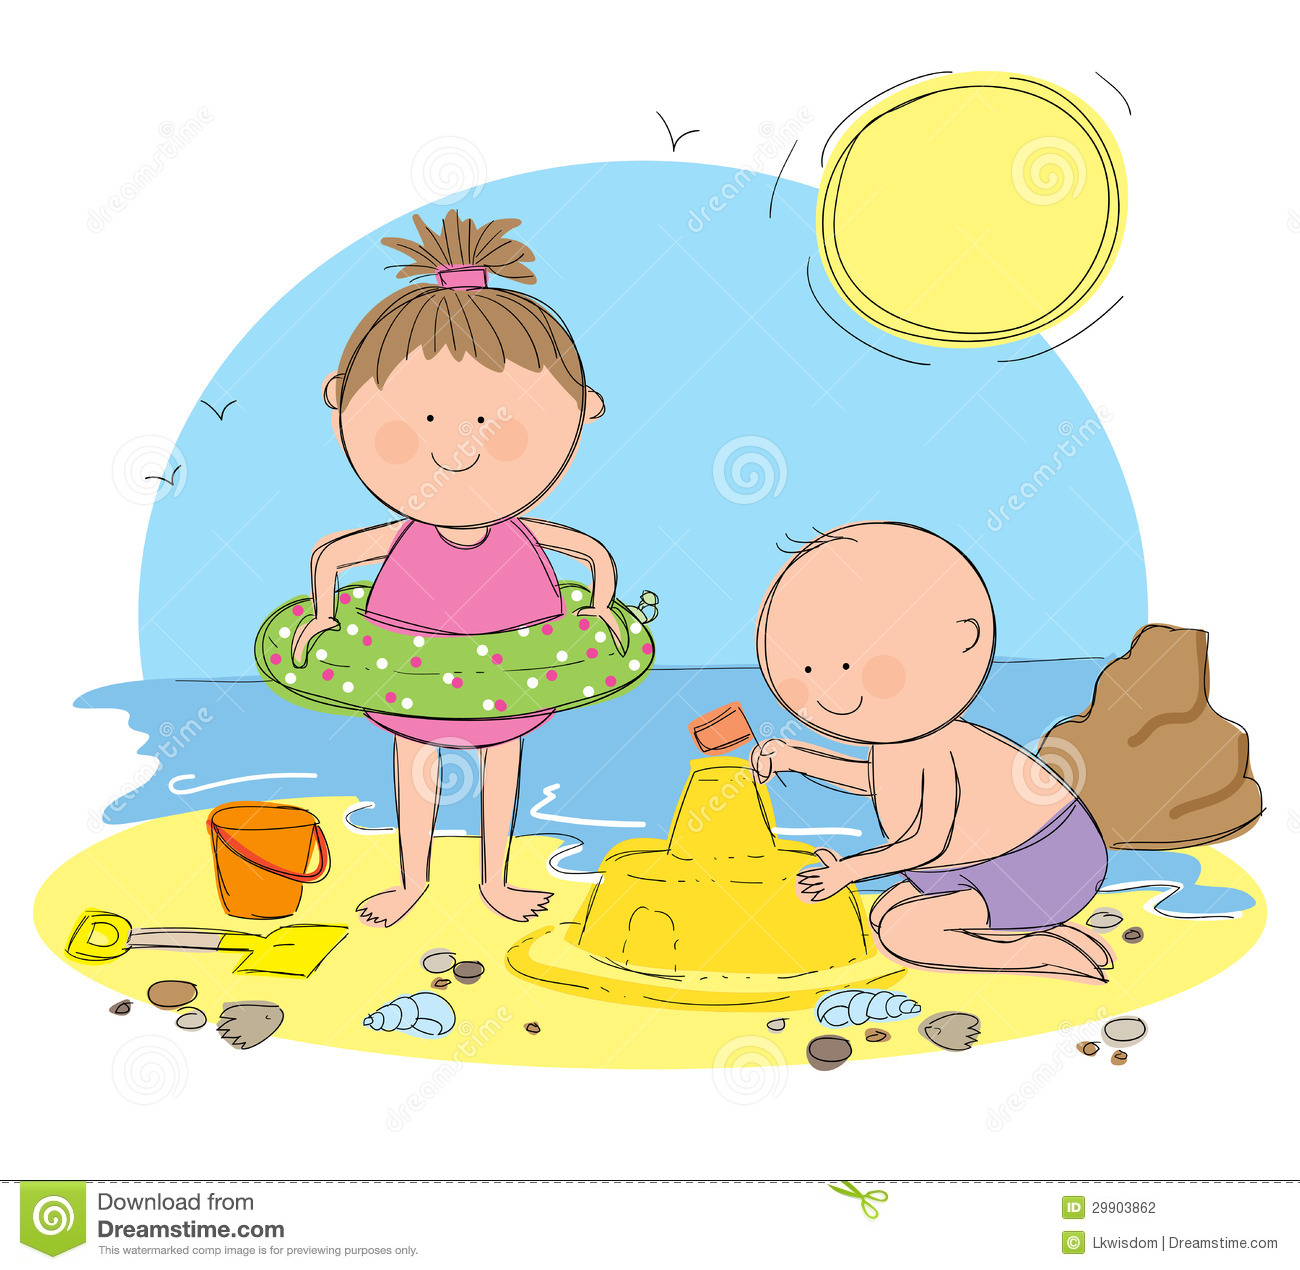 Etsy Icon Vector   183  How To Make A Coraline Doll   183  Daughter To Mother    Kids Playing On The Beach Clipart